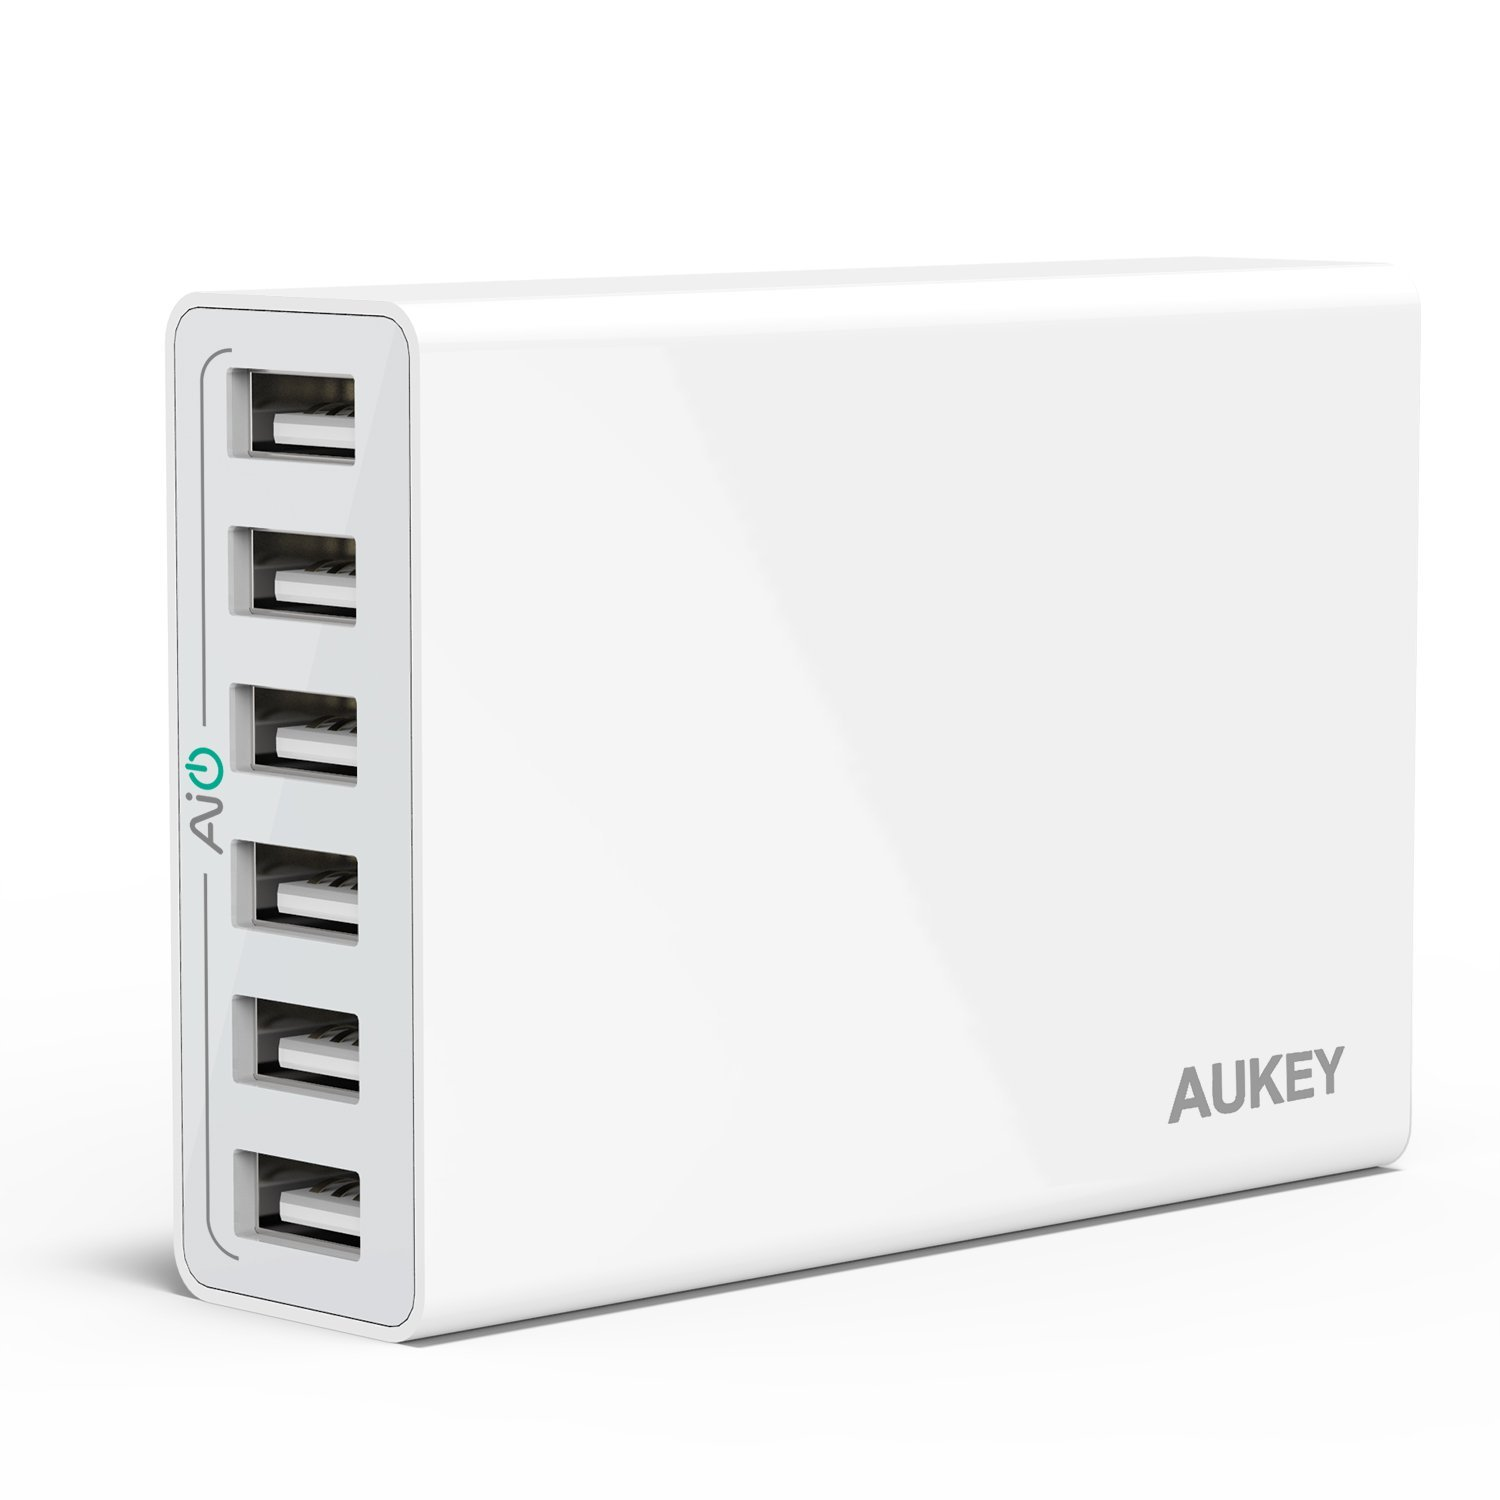 Aukey 6 Ports USB Desktop Charging Station 01